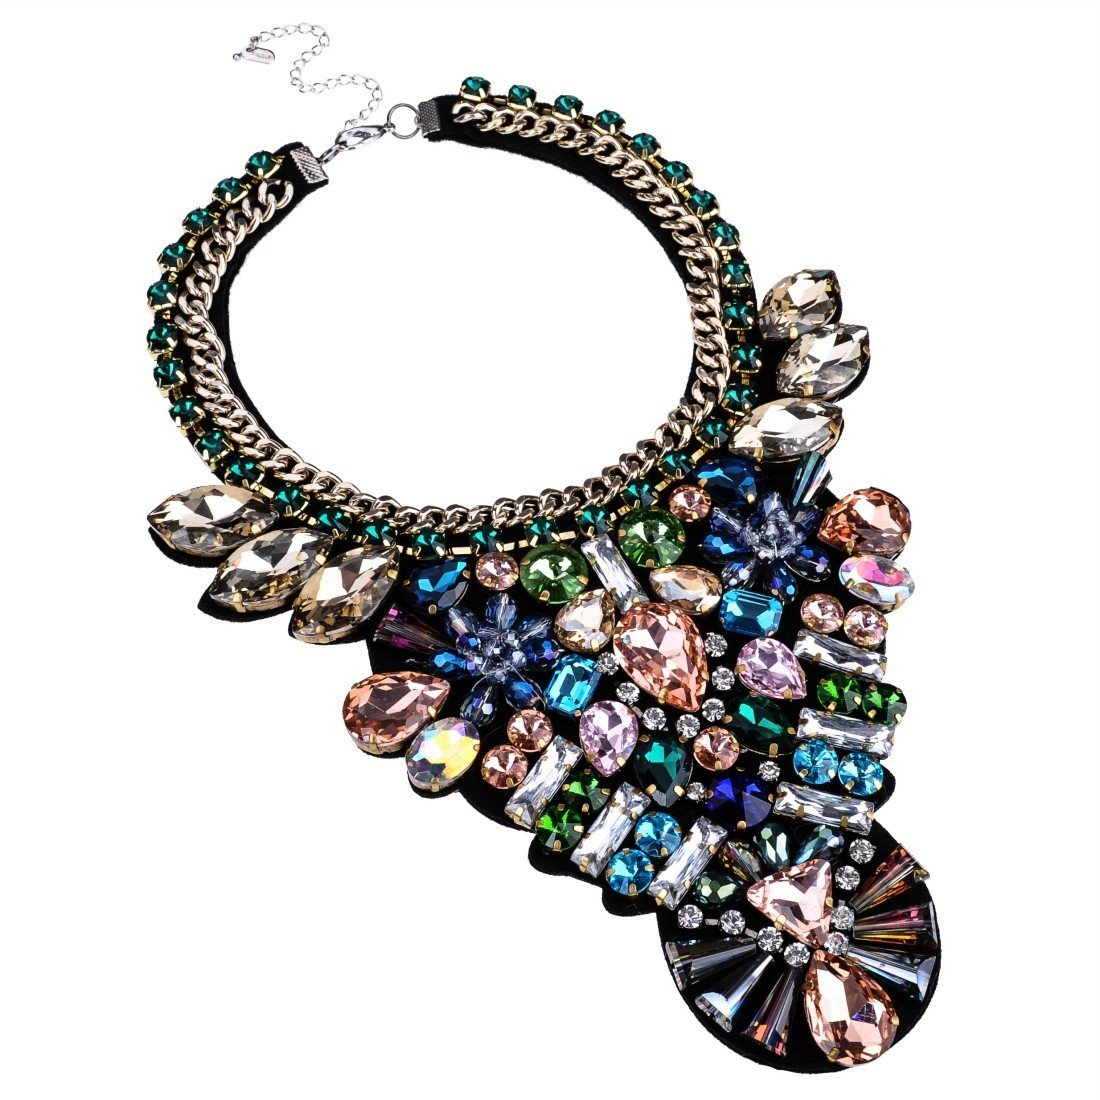 Jerollin Bling Fashion Handmade Gems Clear Multi-color Glass Beads Statement Pendant Necklace